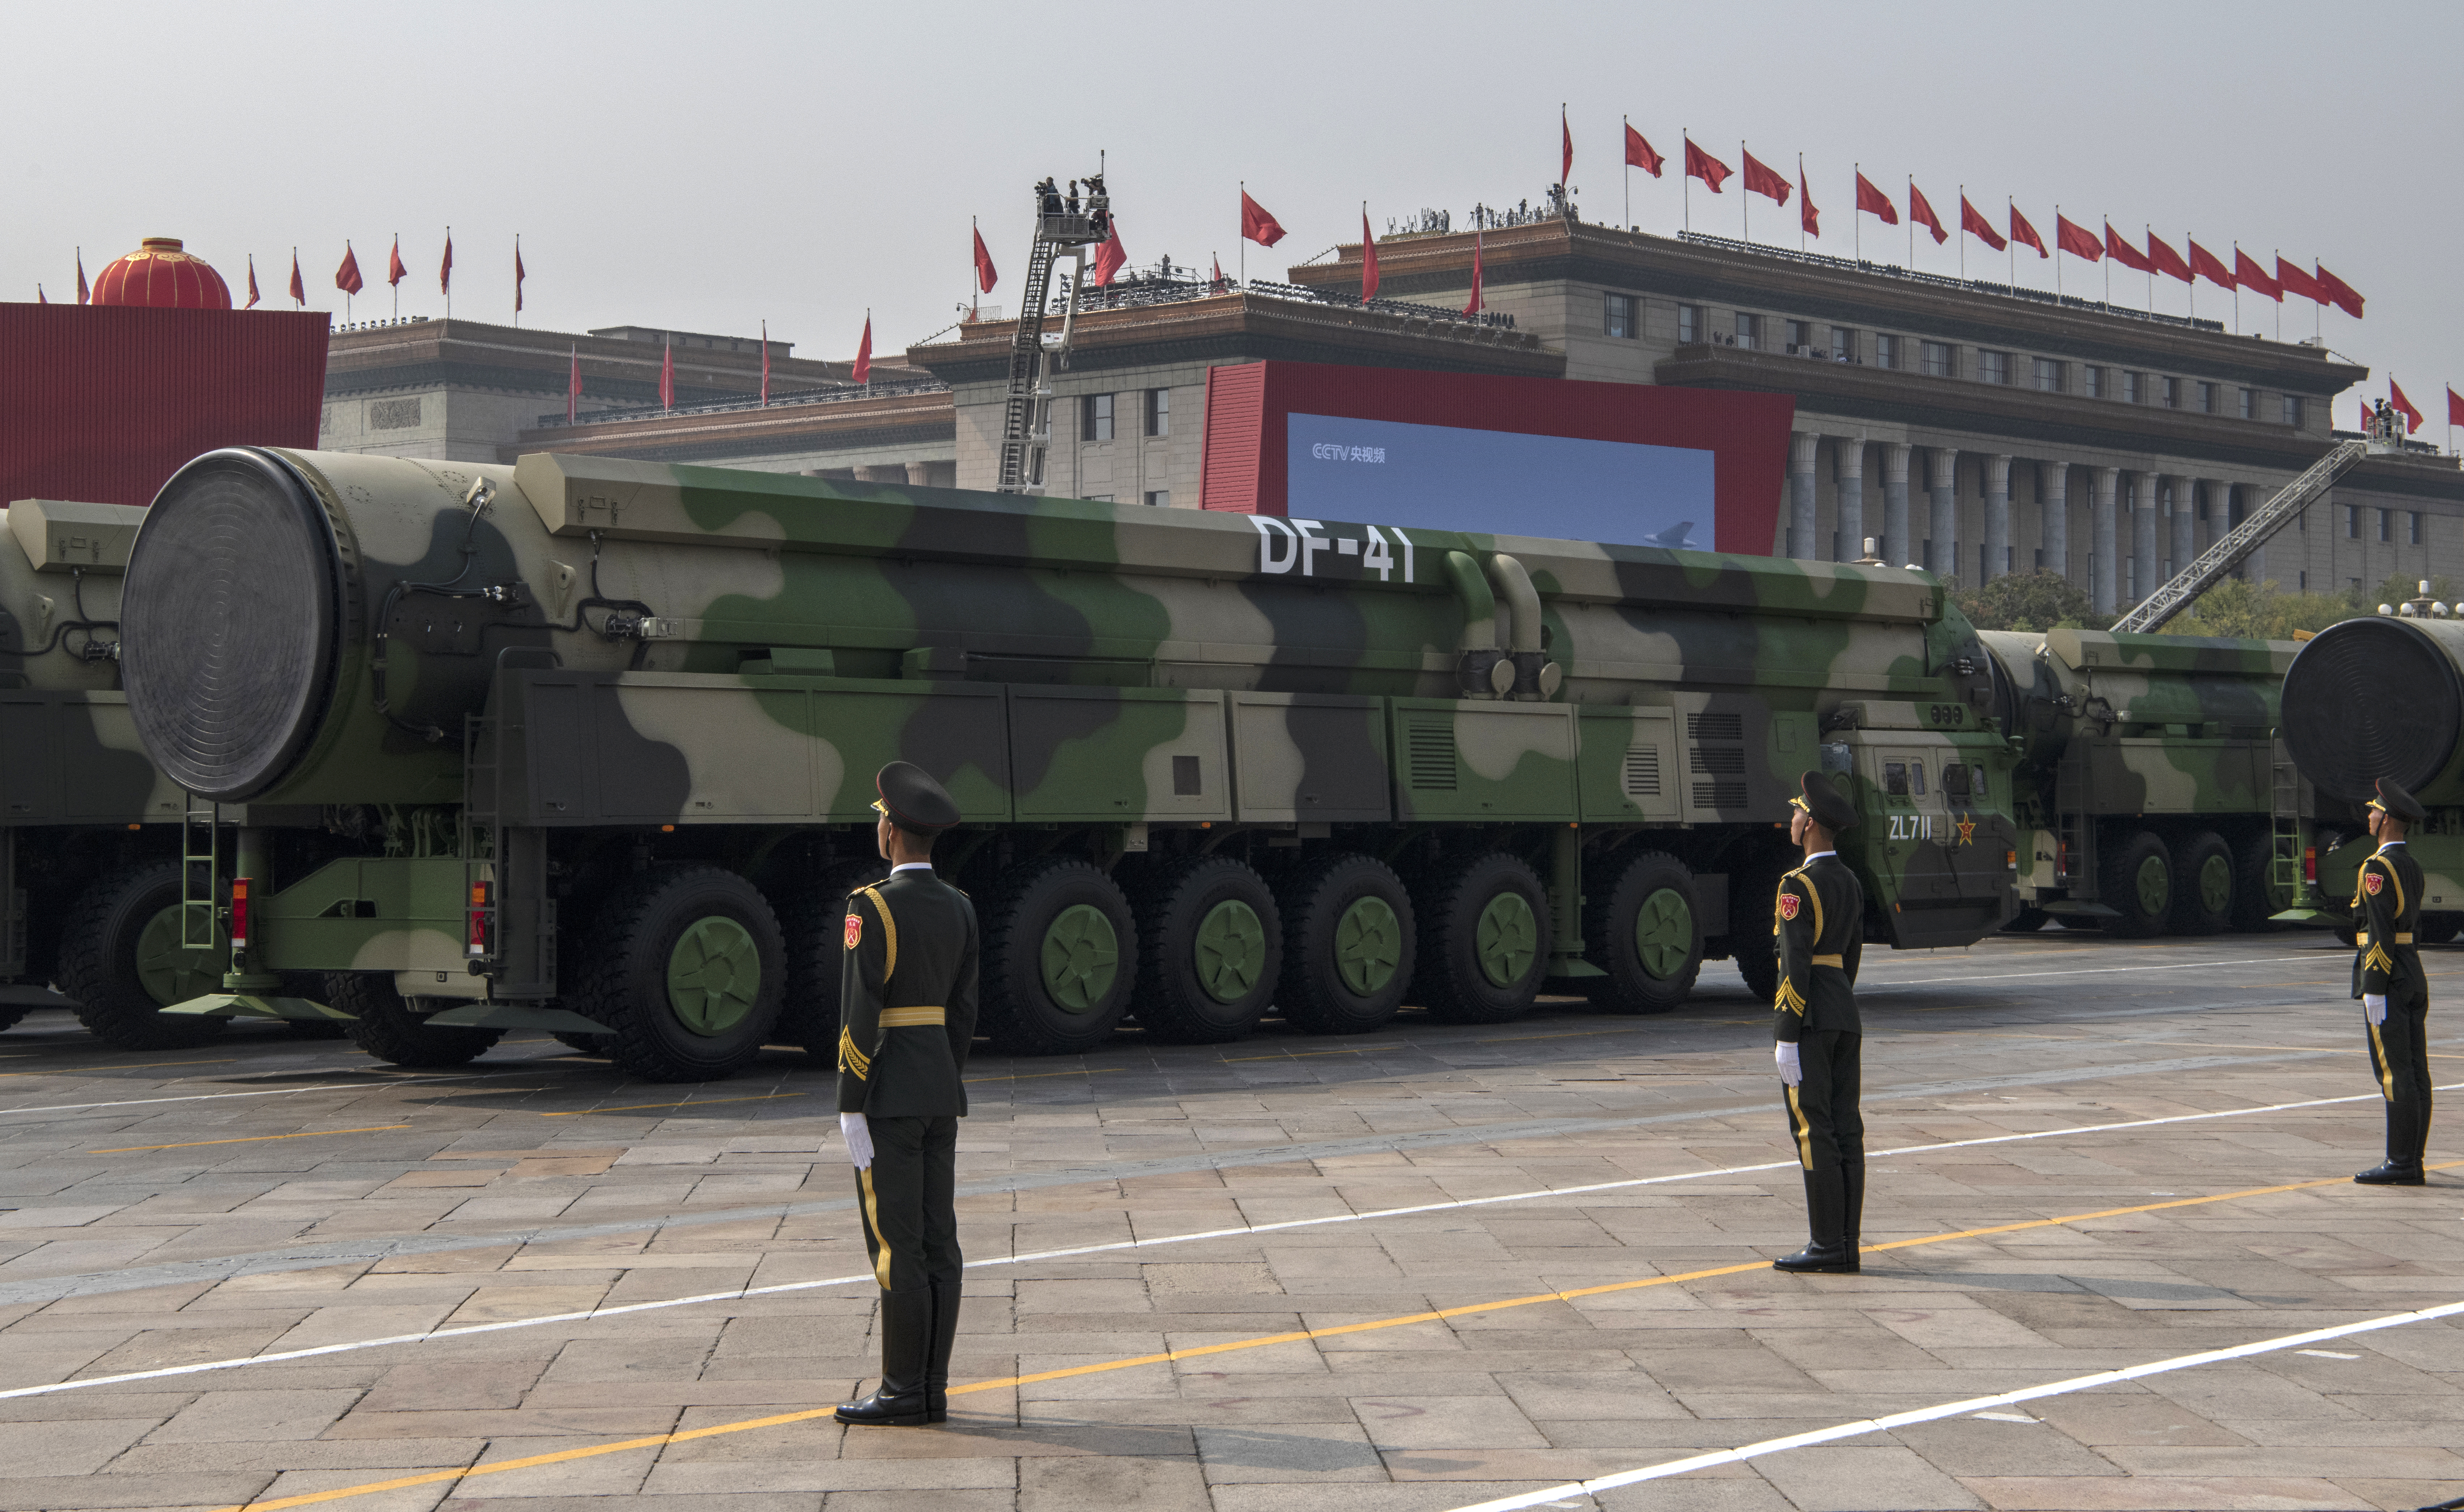 China's state-run news agency Xinhua said the 16 DF-41 transporter-erector-launchers at the parade came from two brigades with the People's Liberation Army Rocket Force. (Kevin Frayer/Getty Images)